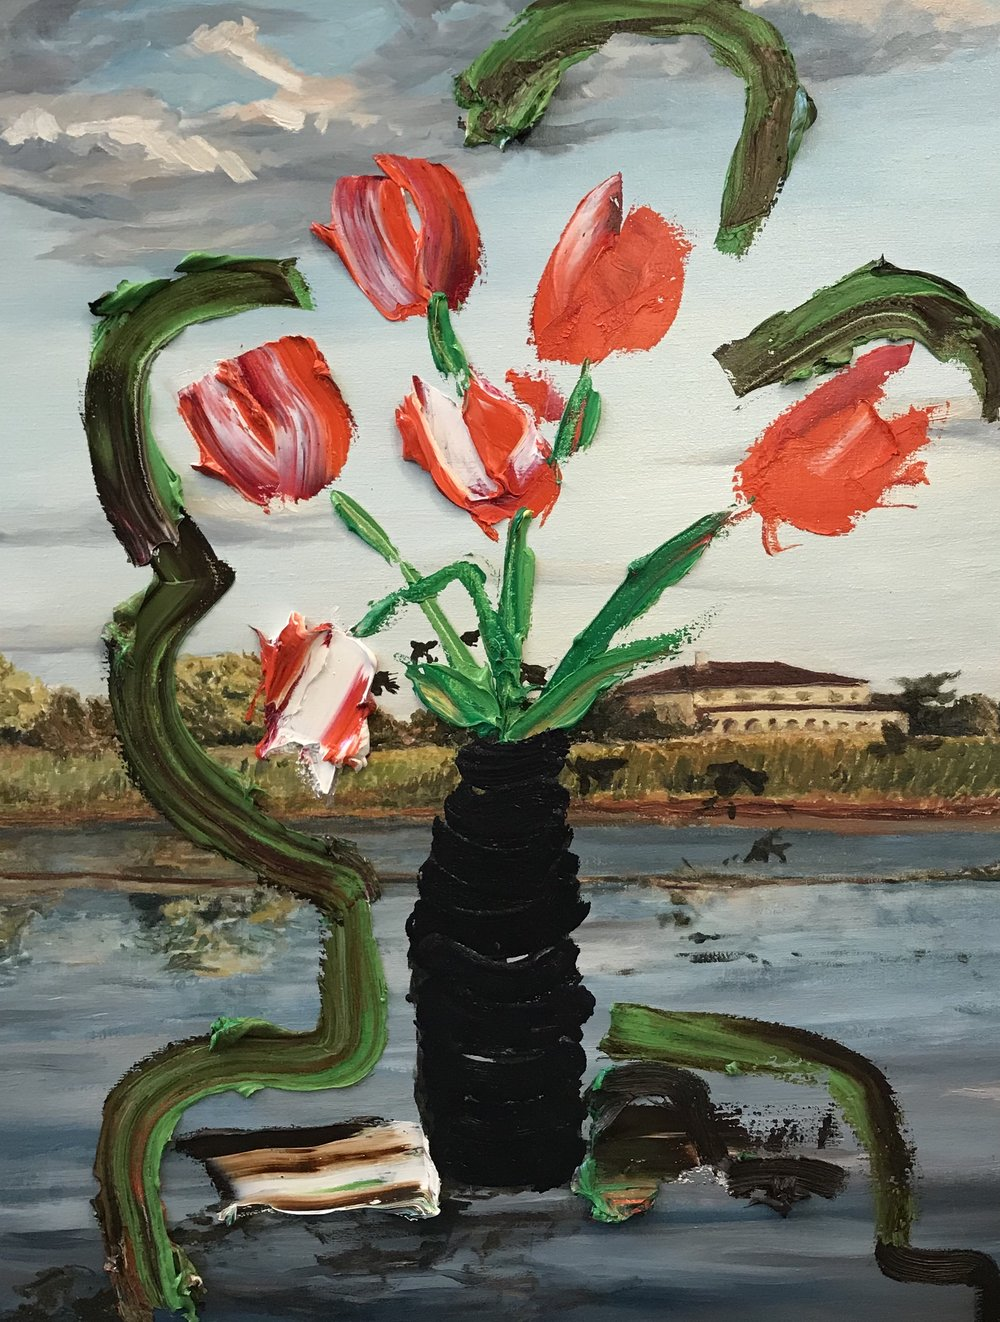 Sag Pond Landscape with Still-life (Red Flowers), 2018